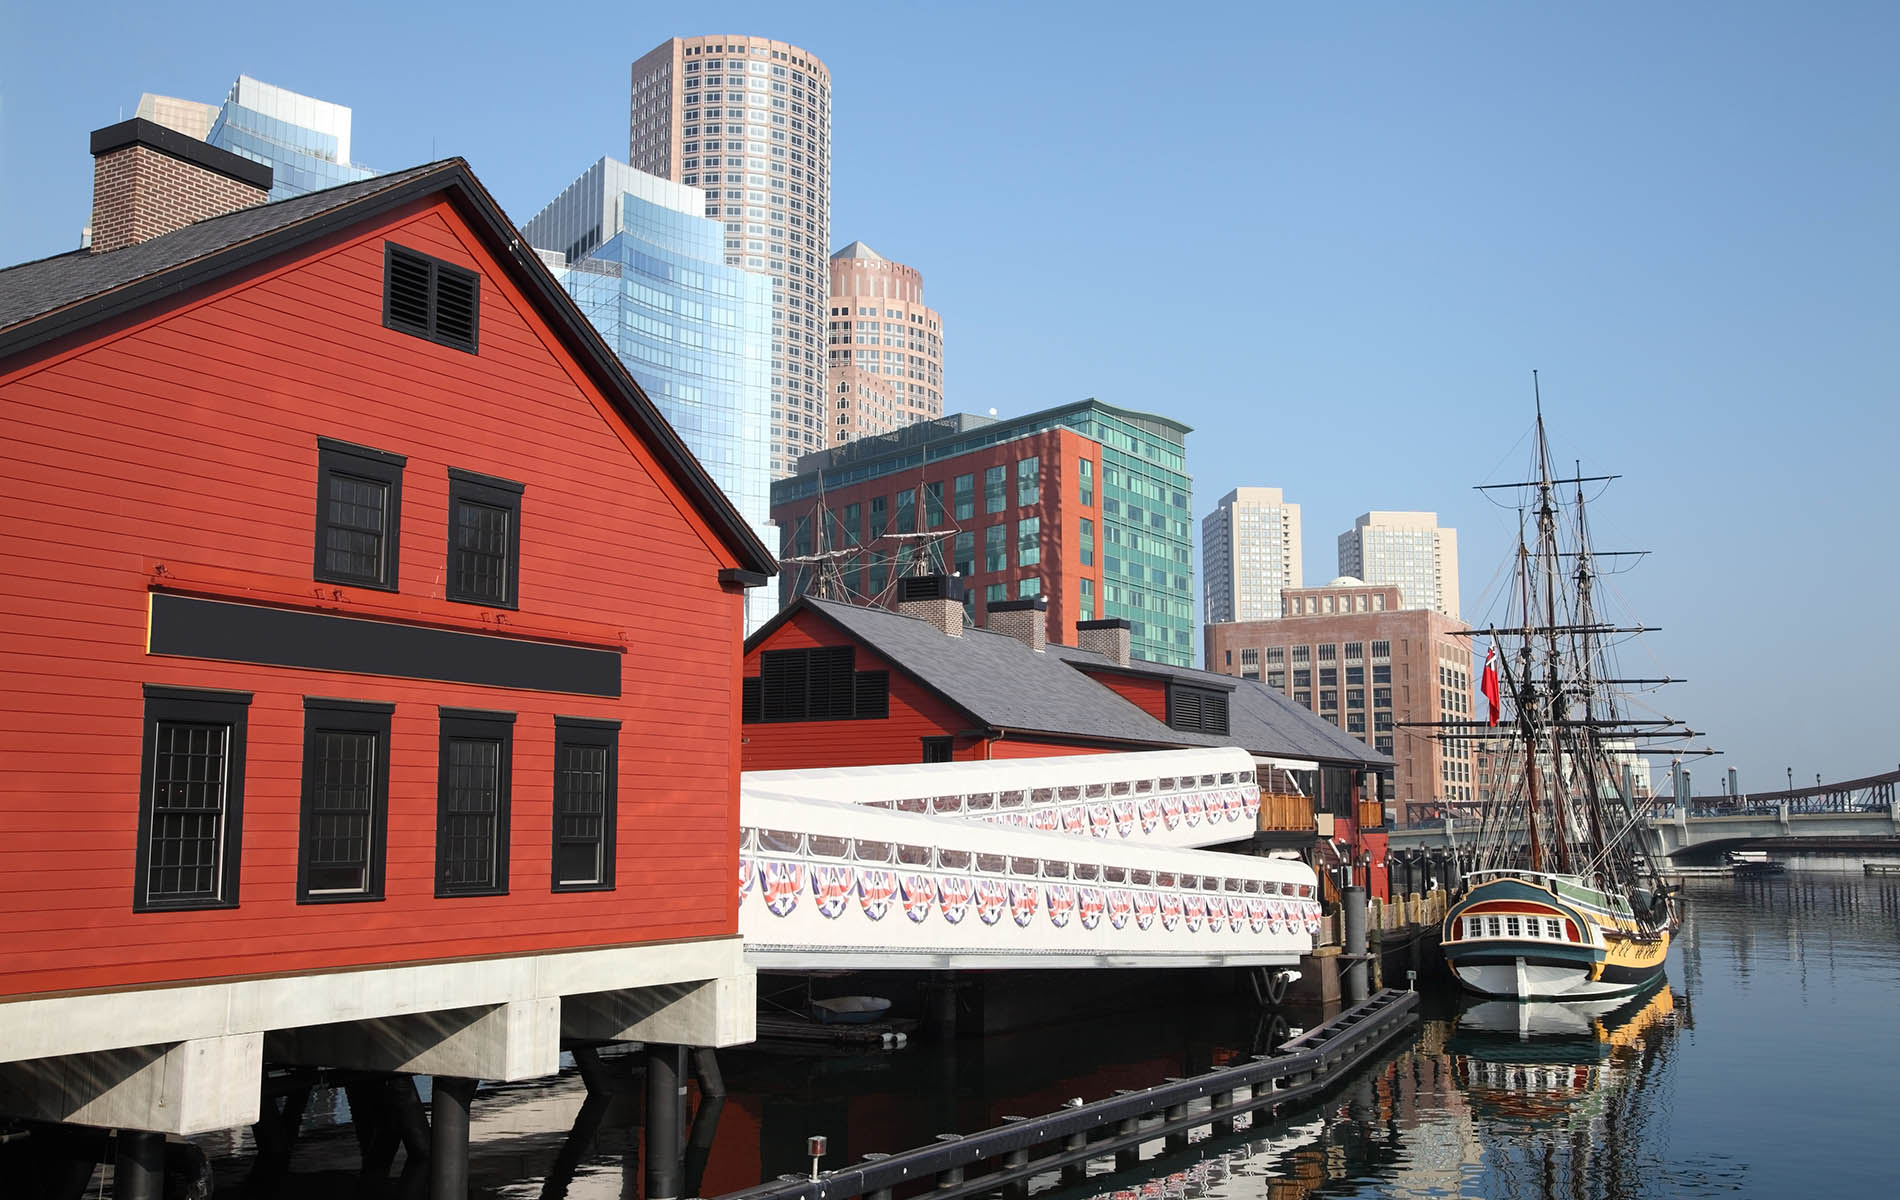 red building on a wharf with white railing walkway to boston tea party ship in water with clear blue sky